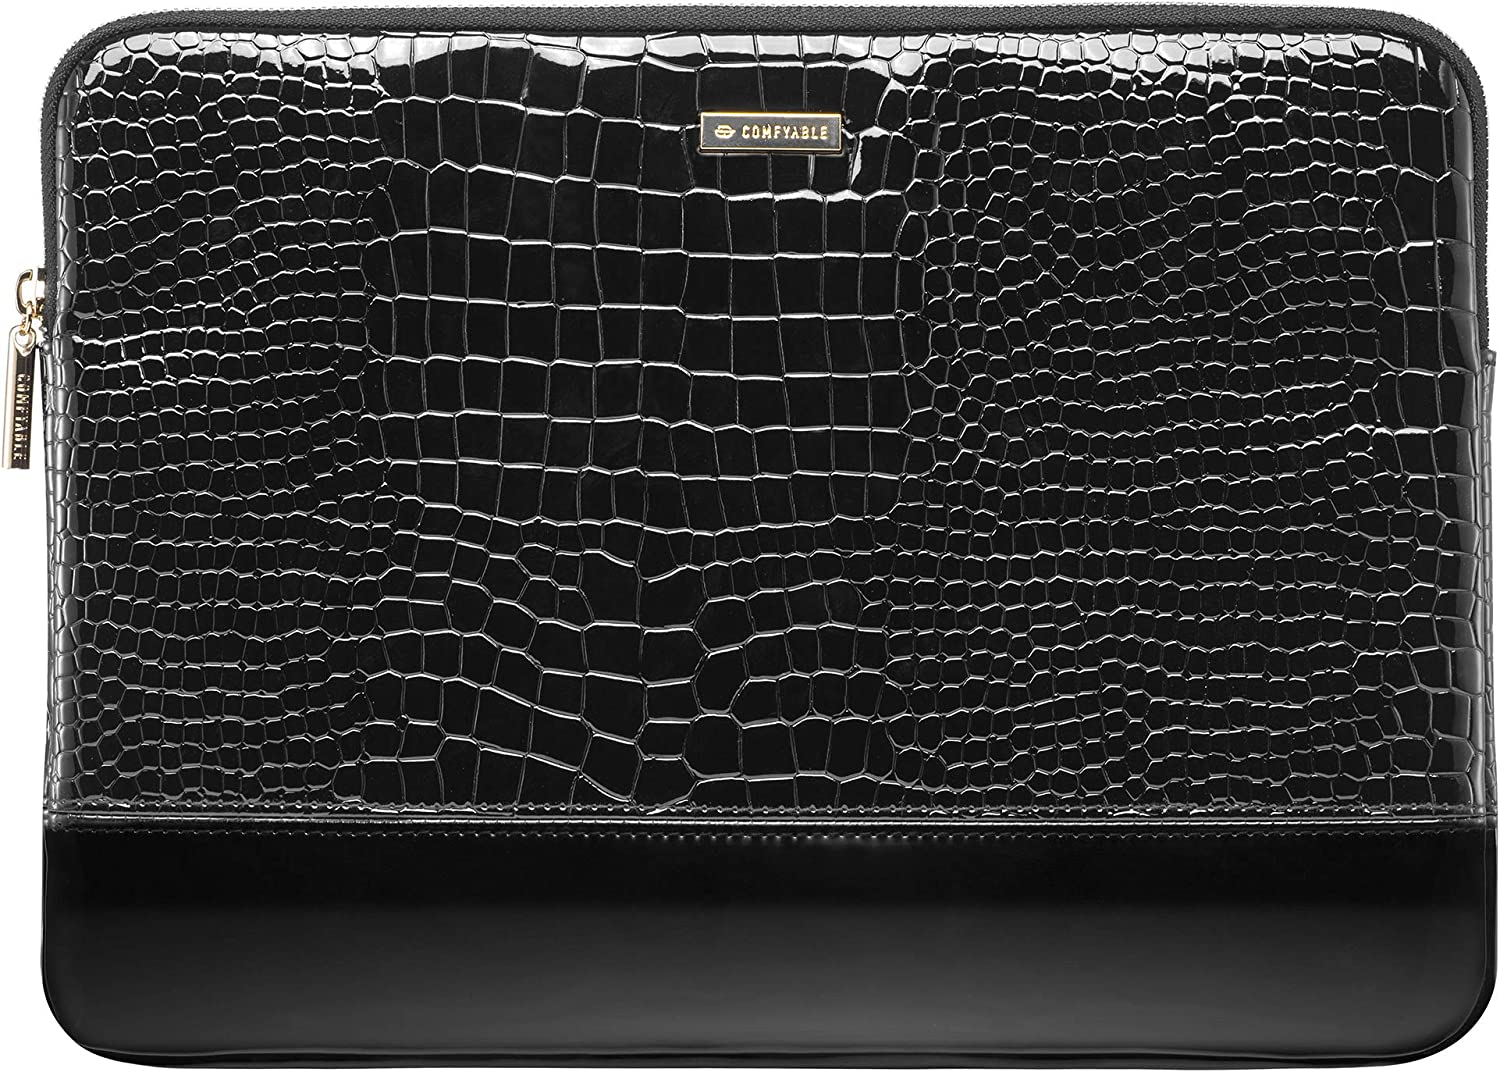 Comfyable Laptop Sleeve for 13-13.3 Inch MacBook Air and MacBook Pro, Alligator/Crocodile PU Faux Leather, Black